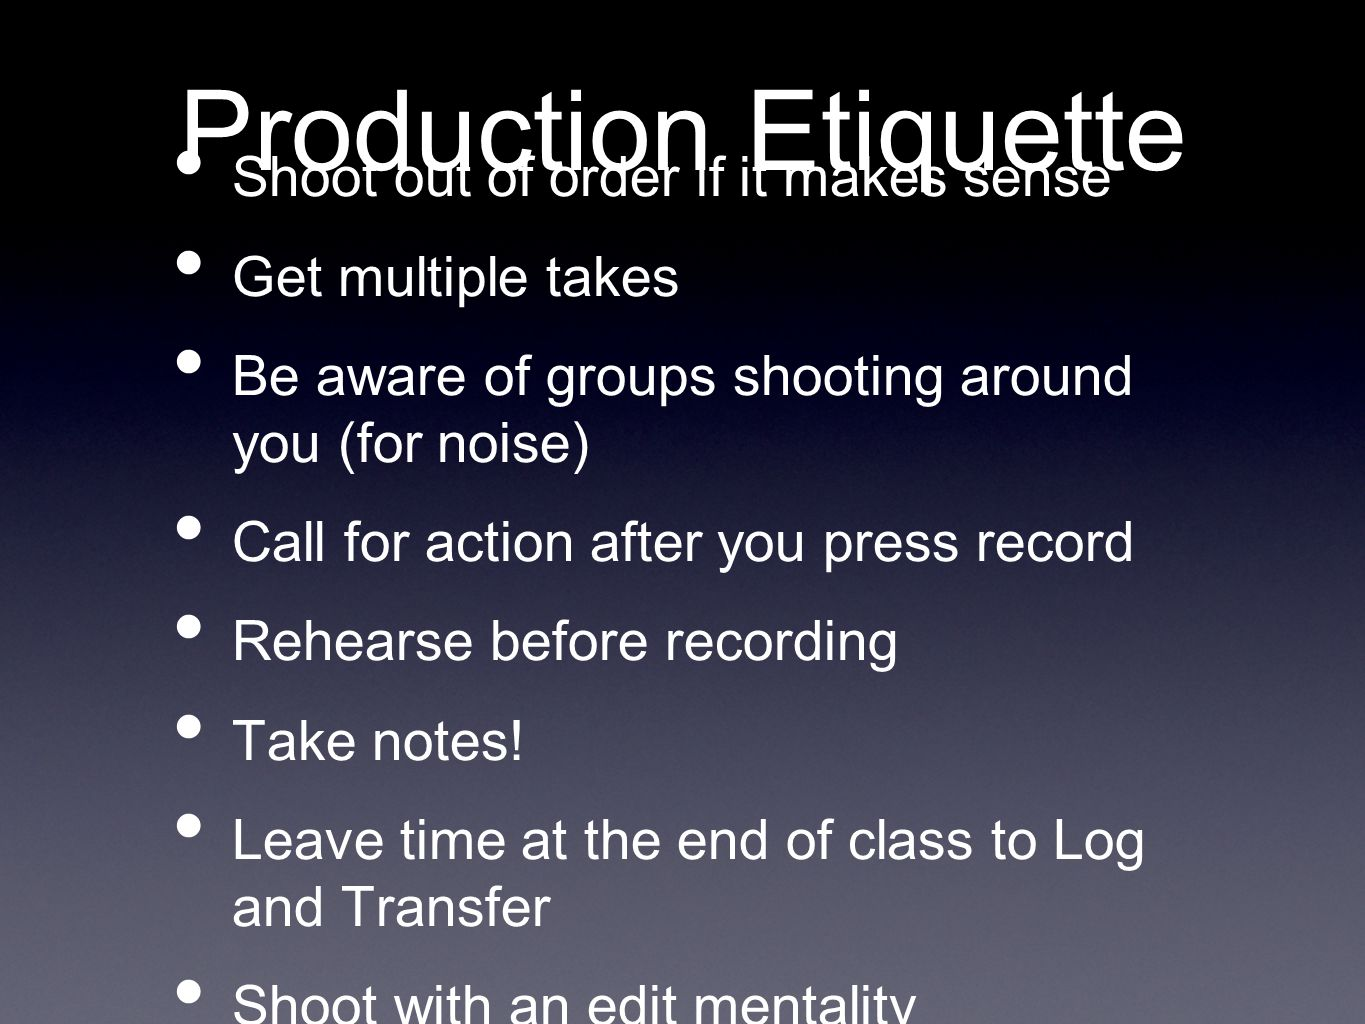 Production Etiquette Shoot out of order if it makes sense Get multiple takes Be aware of groups shooting around you (for noise) Call for action after you press record Rehearse before recording Take notes.